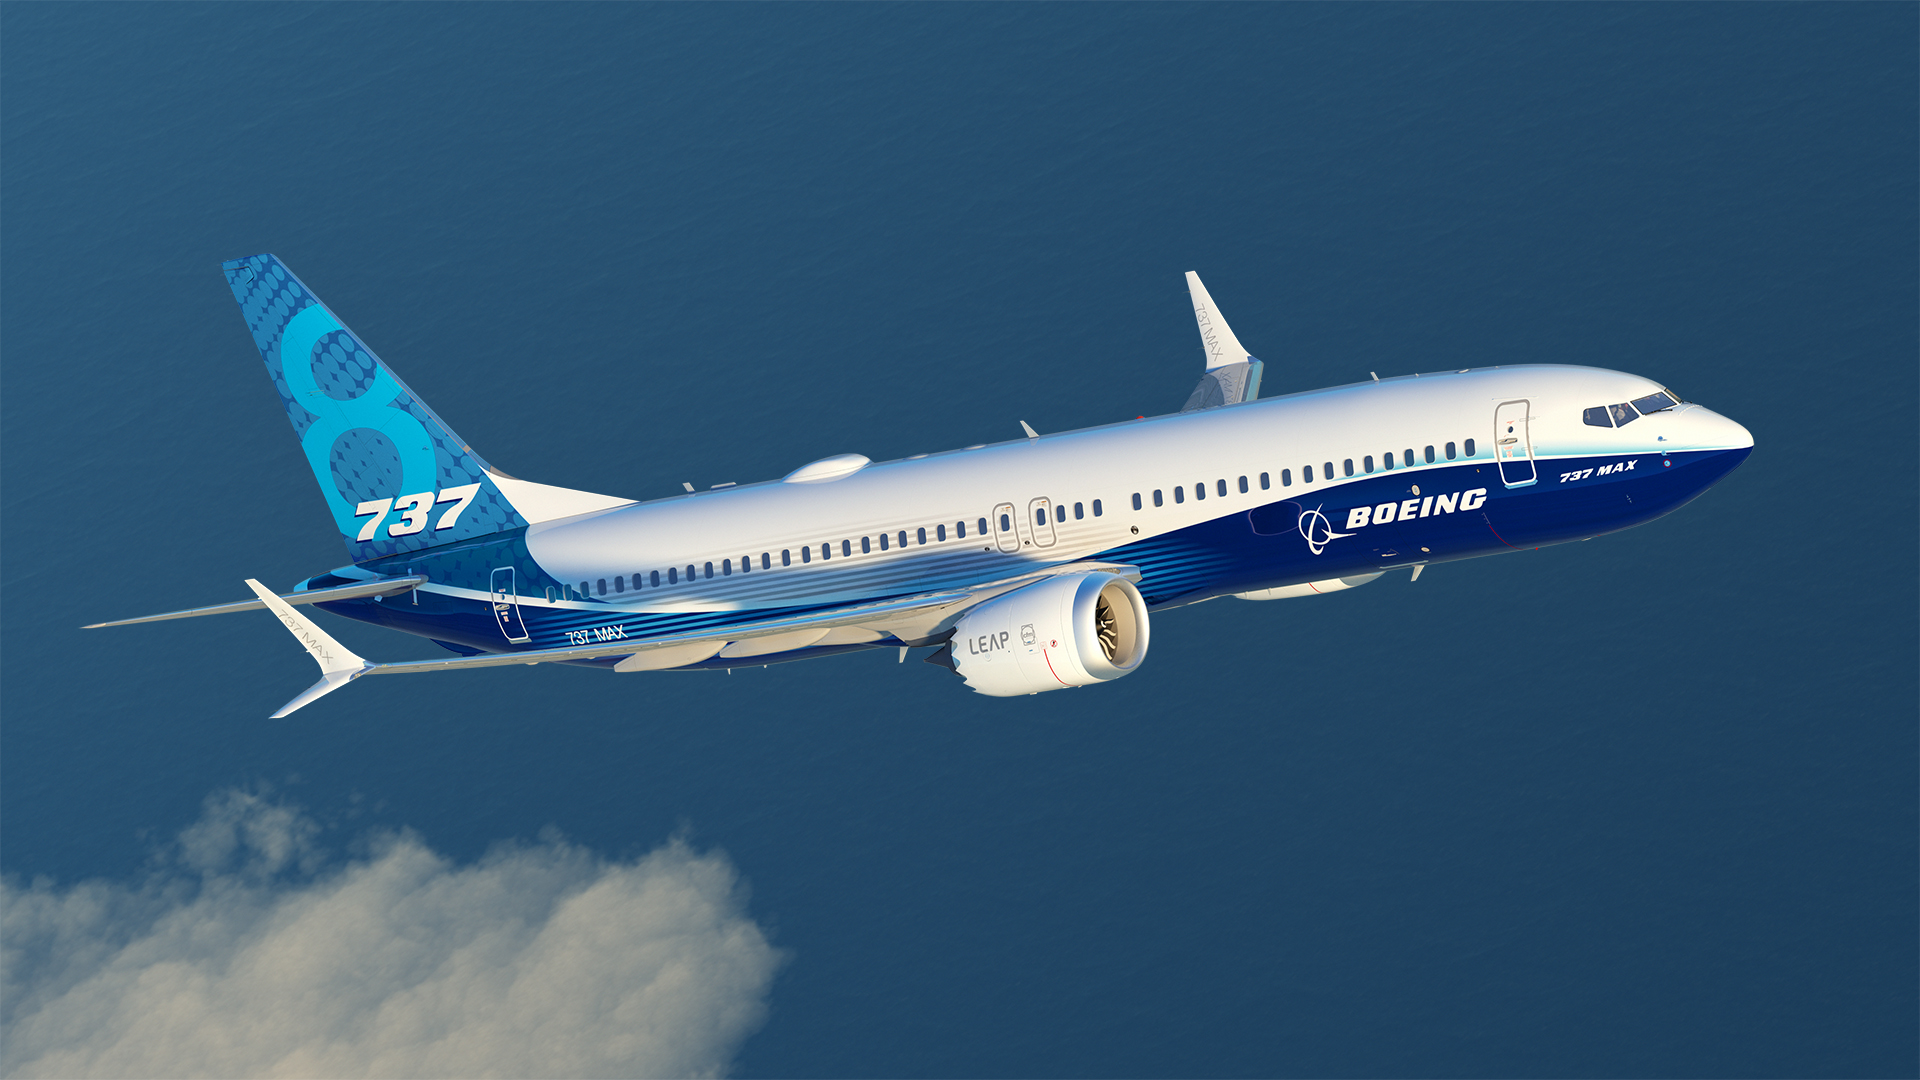 Boeing 737 800 Max: Boeing Signs Commitments For 40 High-capacity 737 MAX 8s